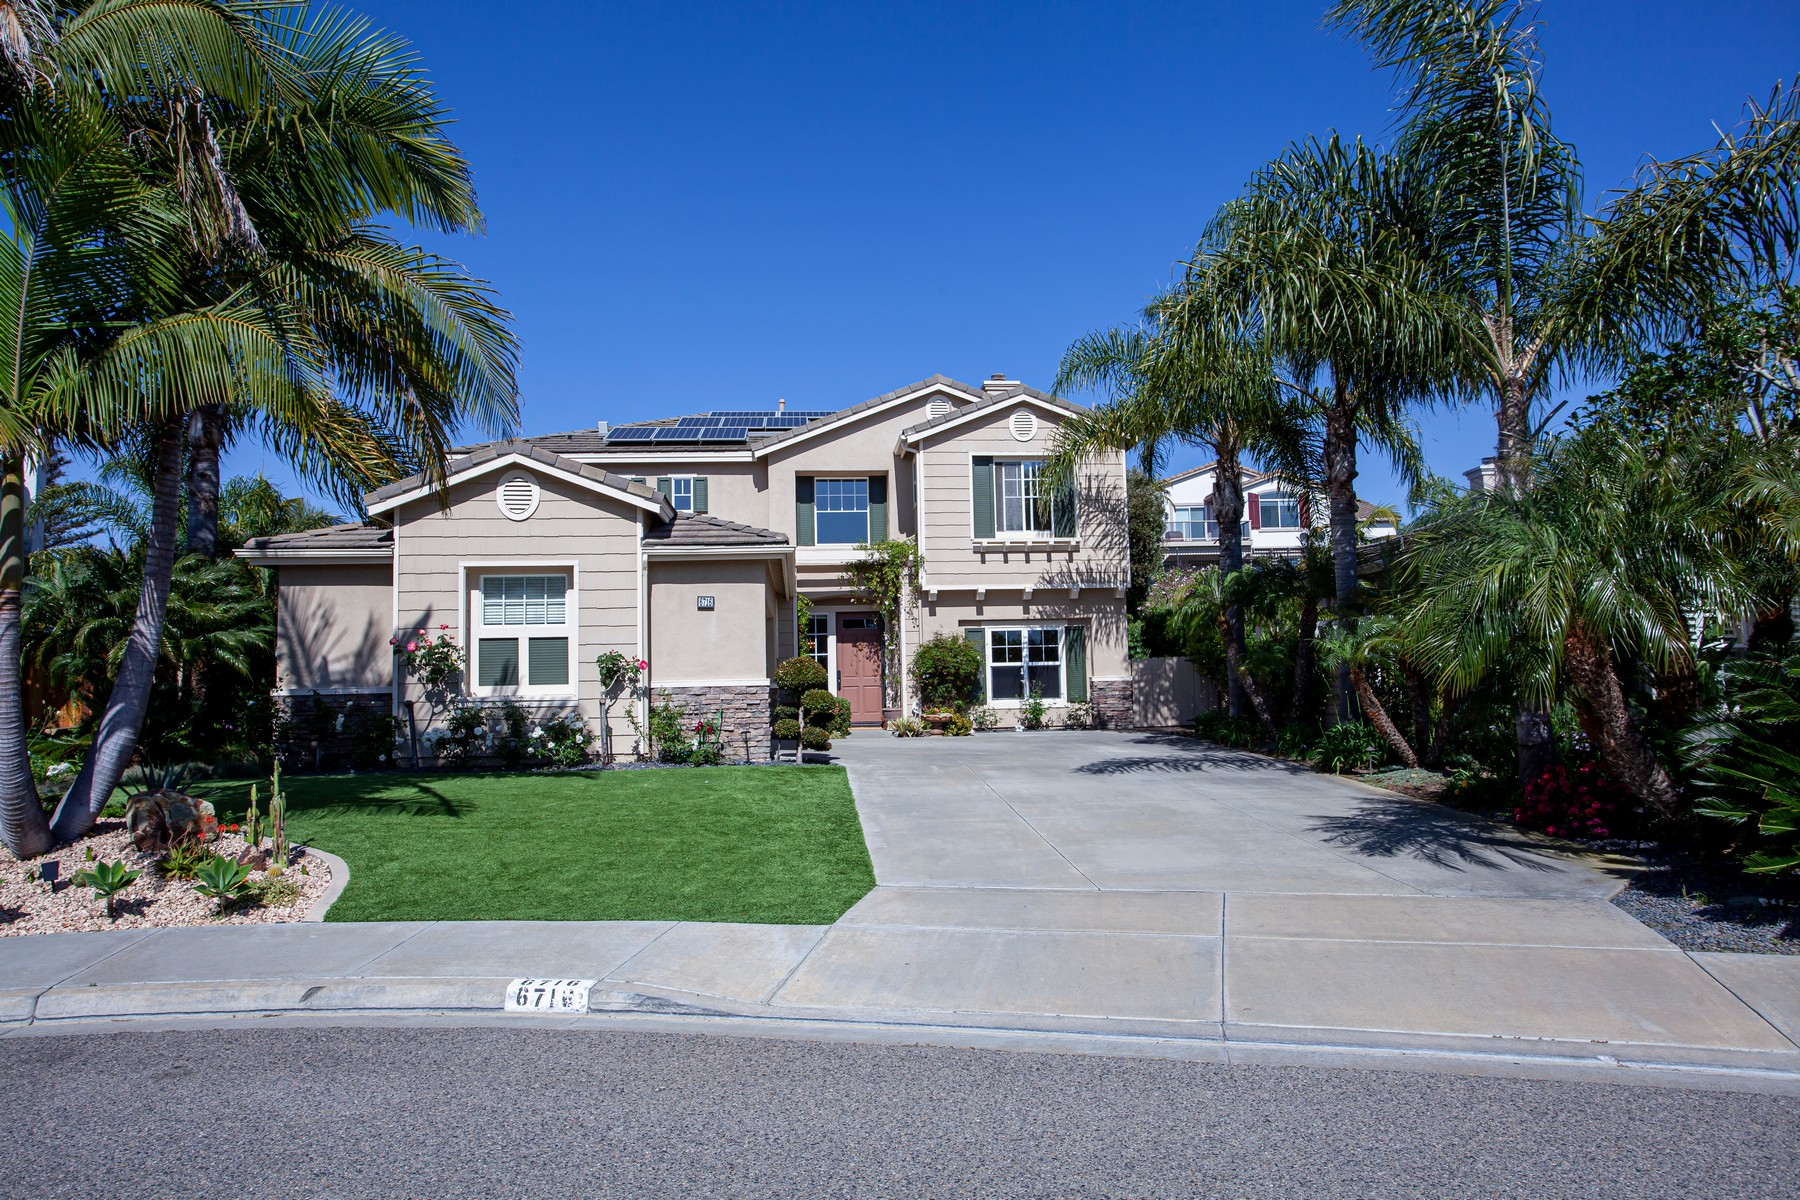 Single Family Homes for Active at 6716 Camphor Place Carlsbad, California 92011 United States